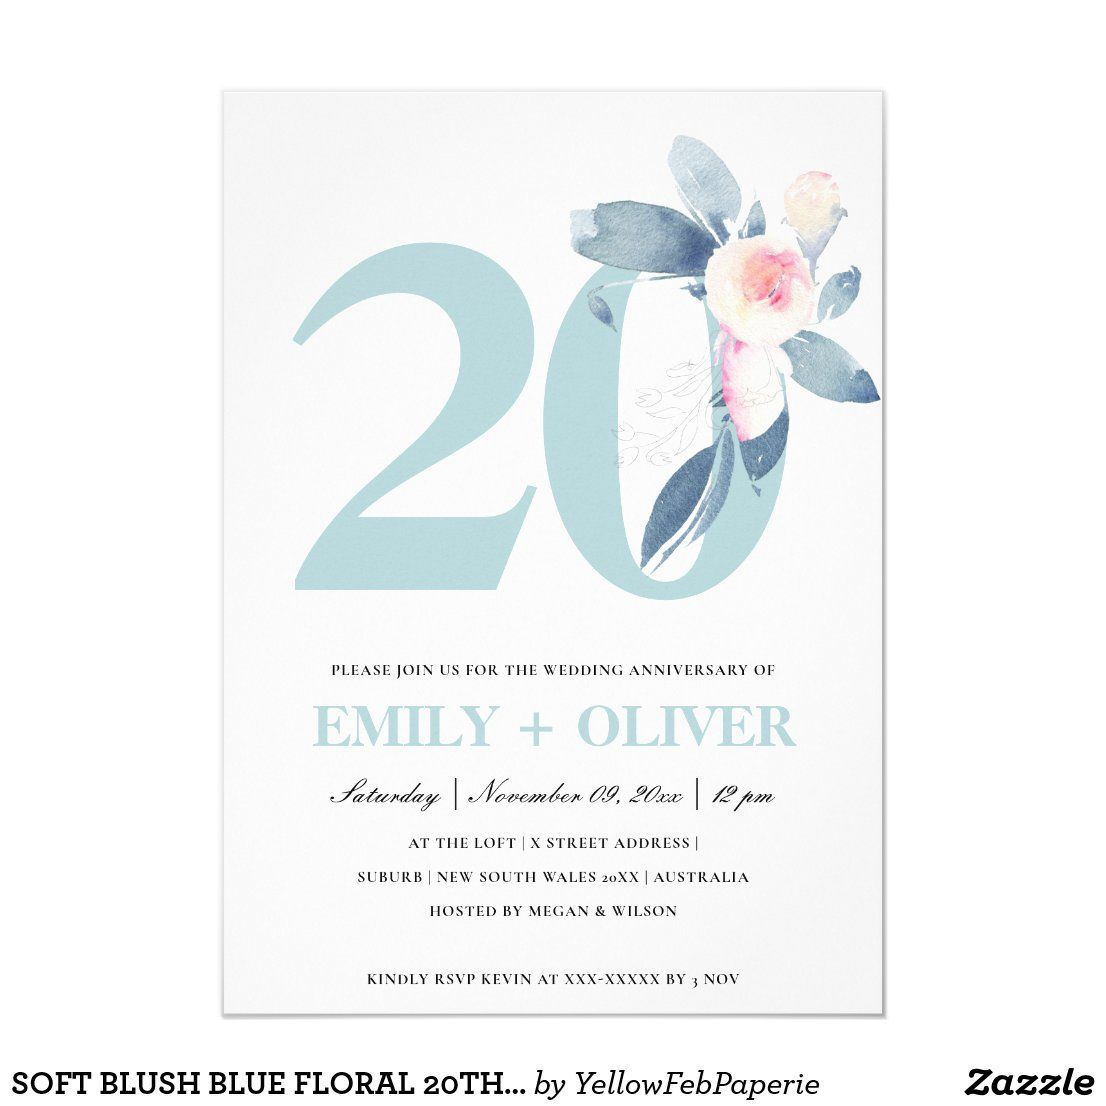 Soft Blush Blue Floral 20th Any Year Anniversary Invitation Zazzle Com Anniversary Invitations Invitations Year Anniversary